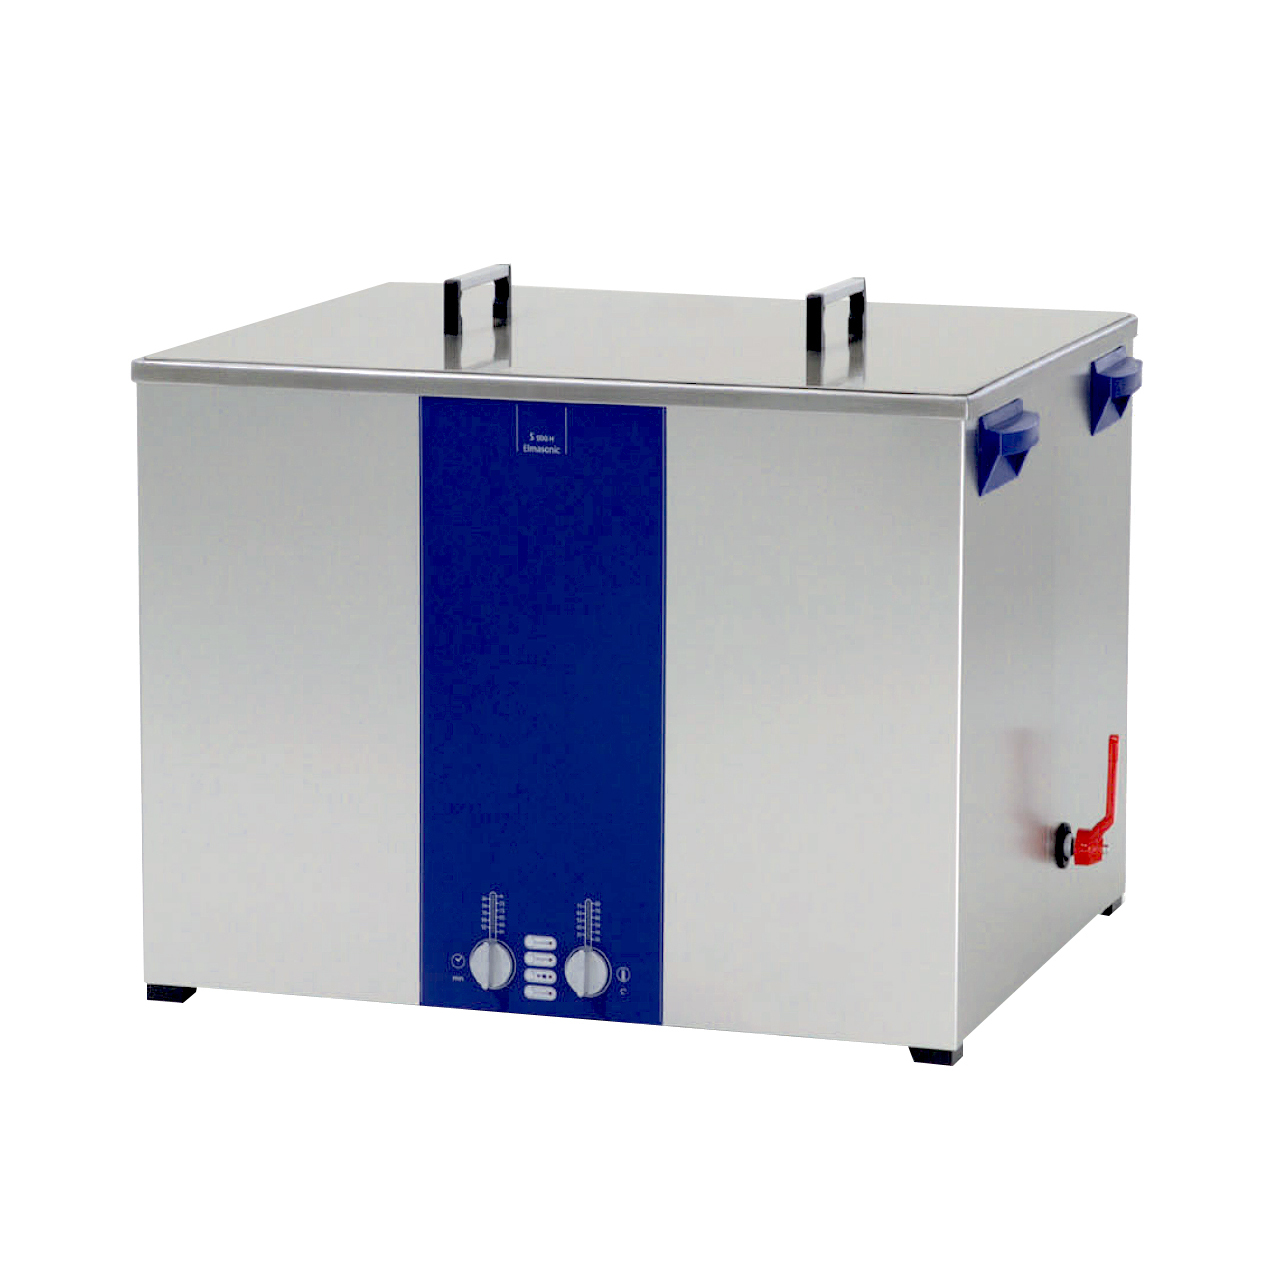 ELMA Ultrasonic Cleaner - Elmasonic S Series